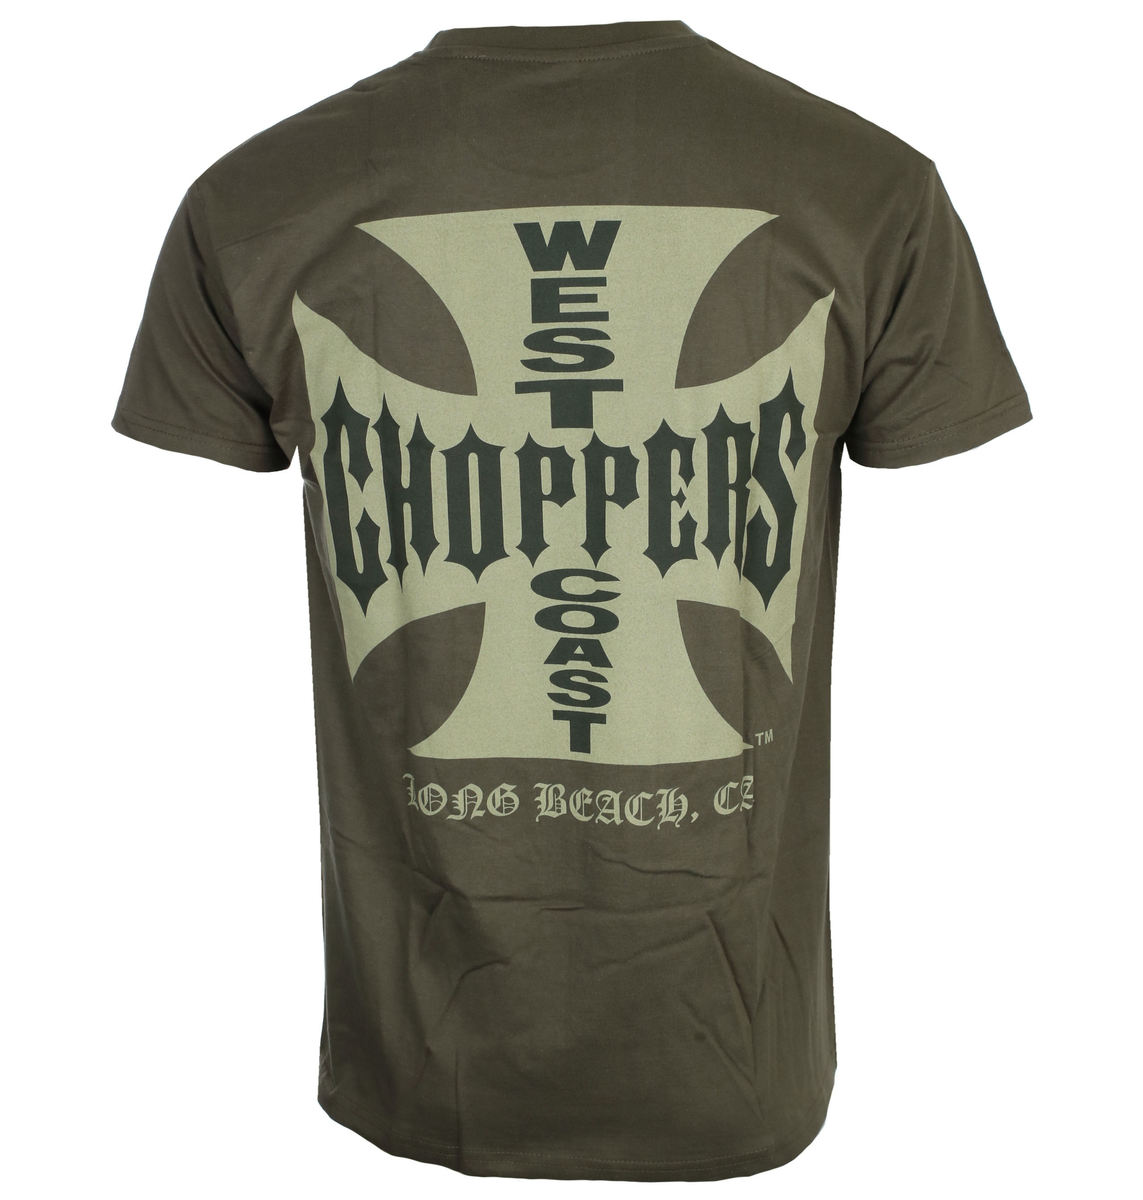 tričko pánské West Coast Choppers - OG CROSS - Solid khaki - WCCTS132667KH